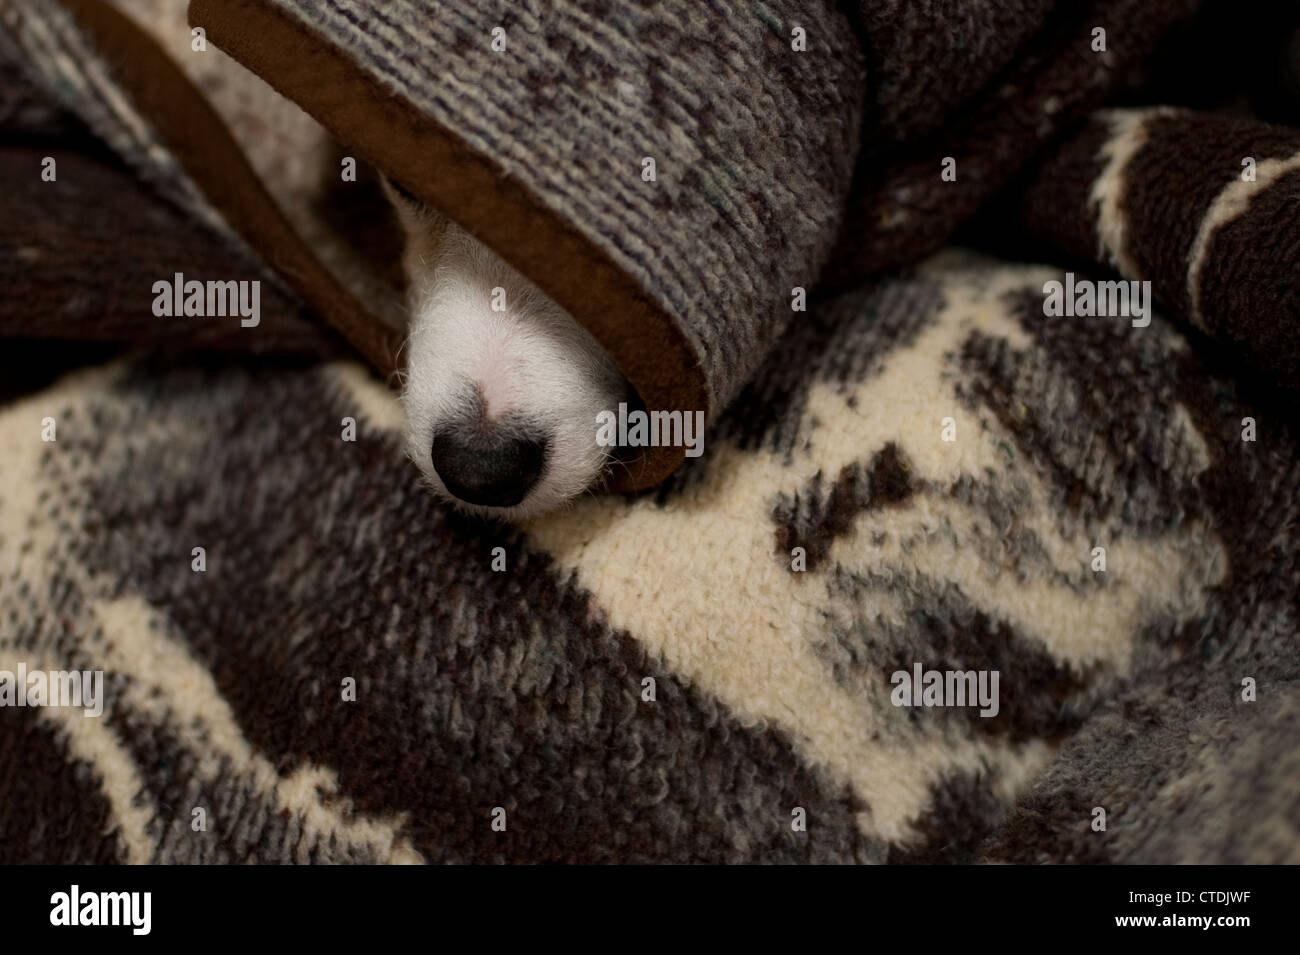 Jack Russell Terrier hiding under blankets - Stock Image